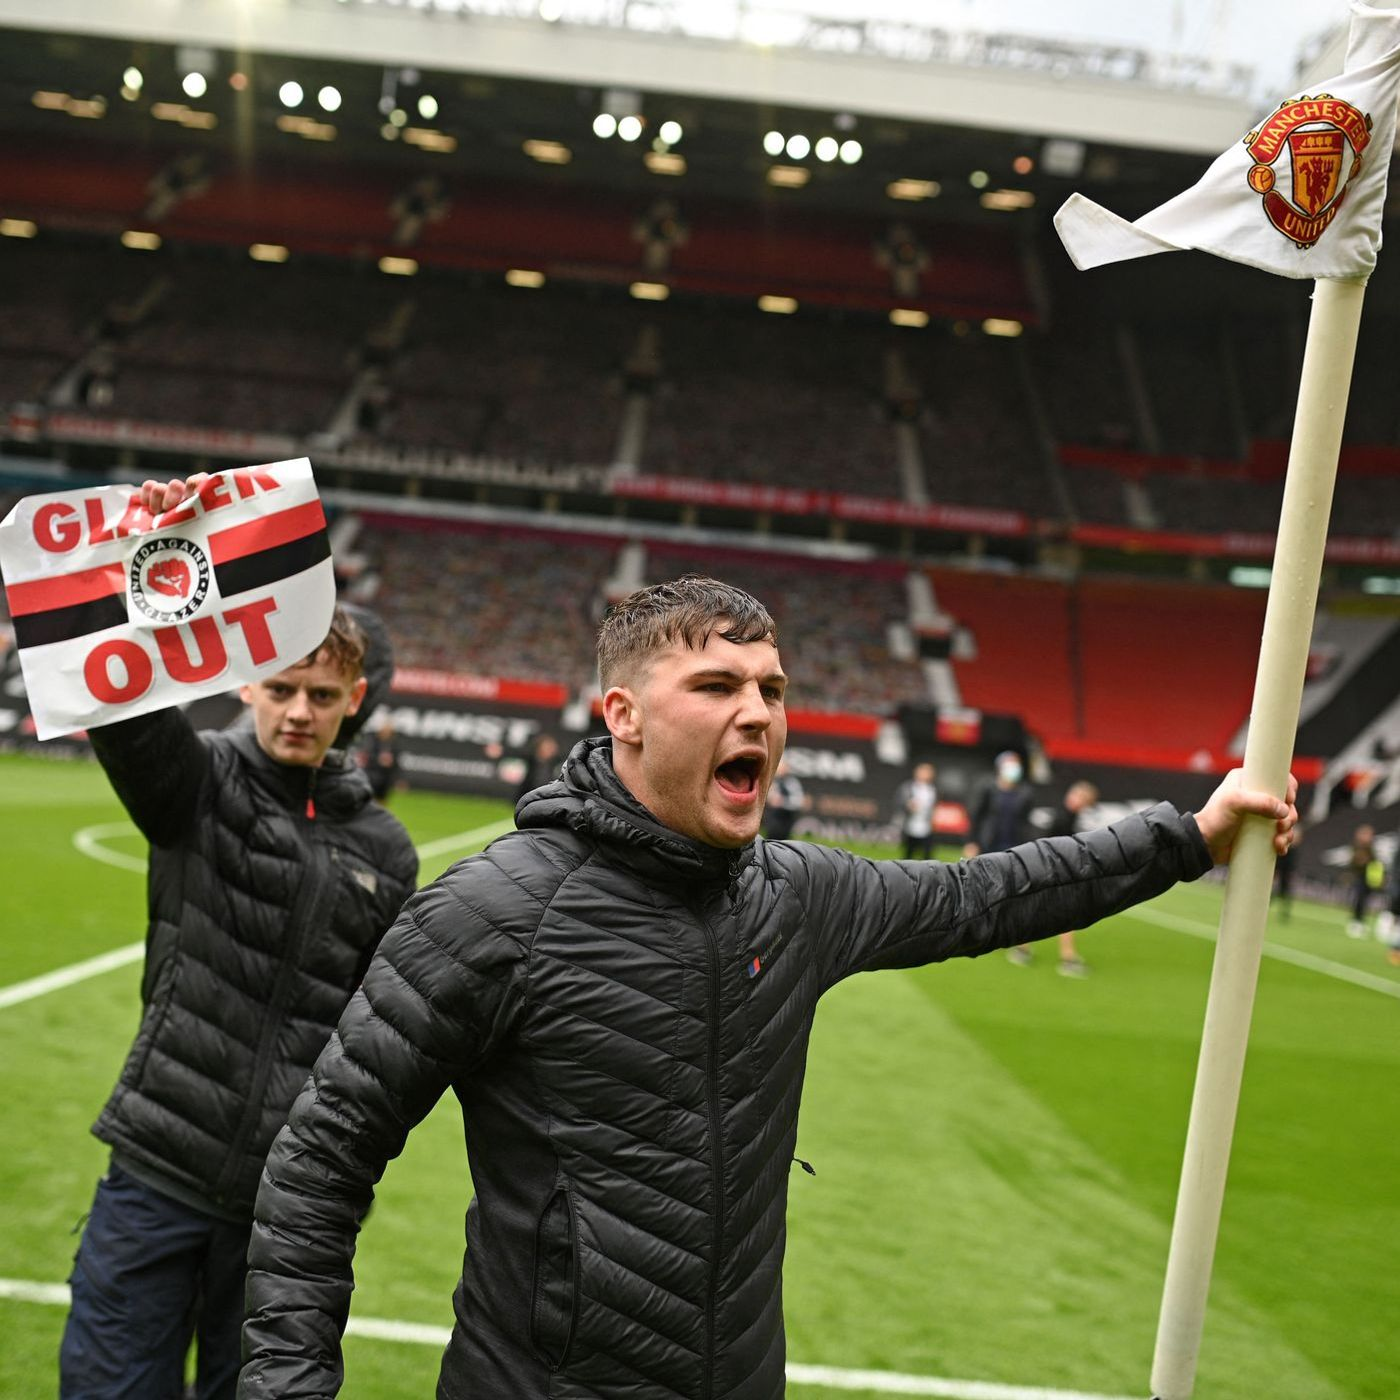 Blood Red: Liverpool's visit to Manchester United POSTPONED after supporter protests at Old Trafford